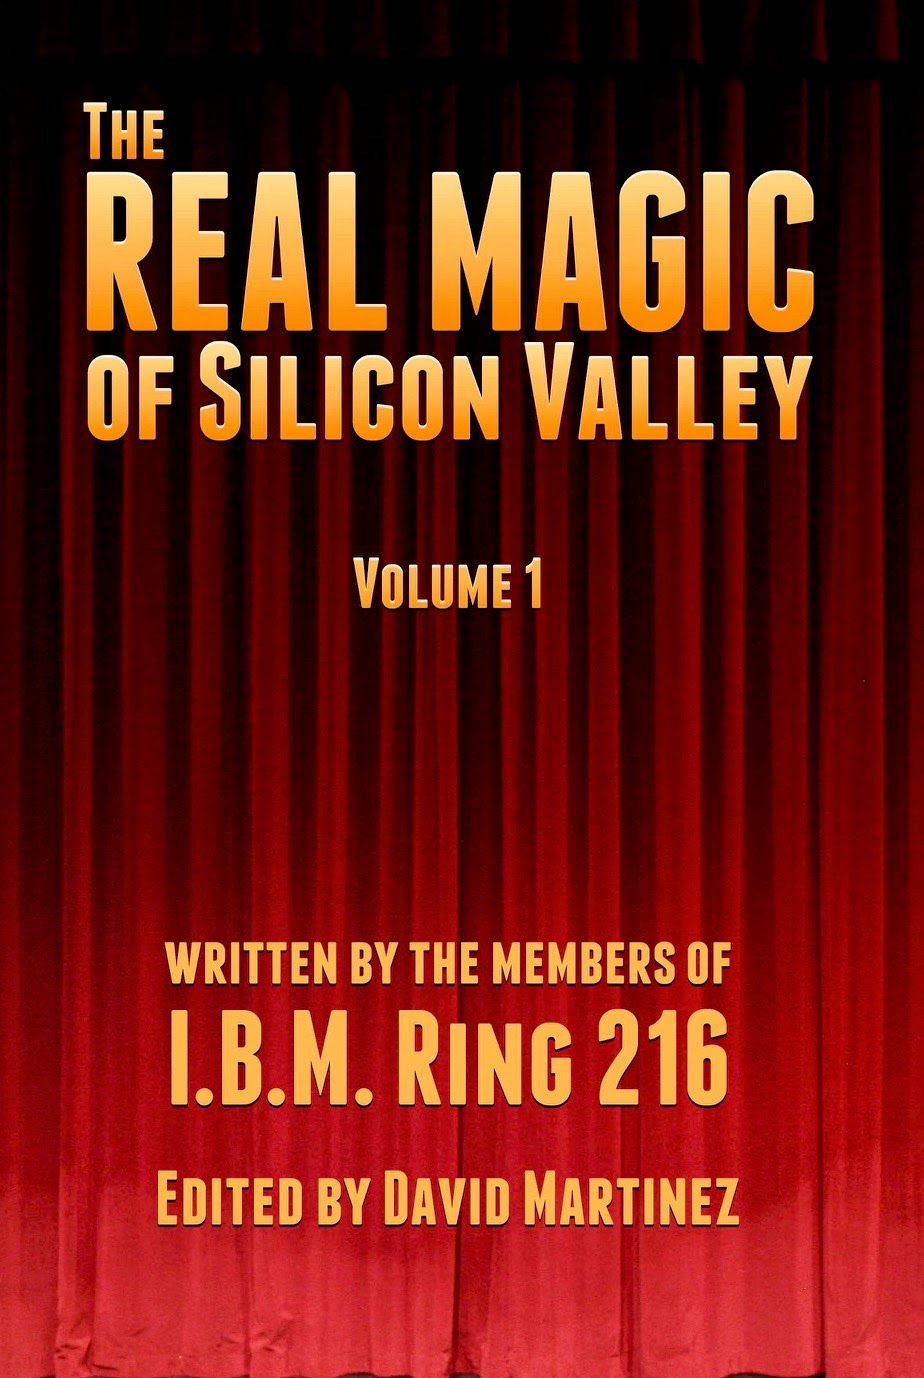 The Real Magic of Silicon Valley, Vol. 1 book cover